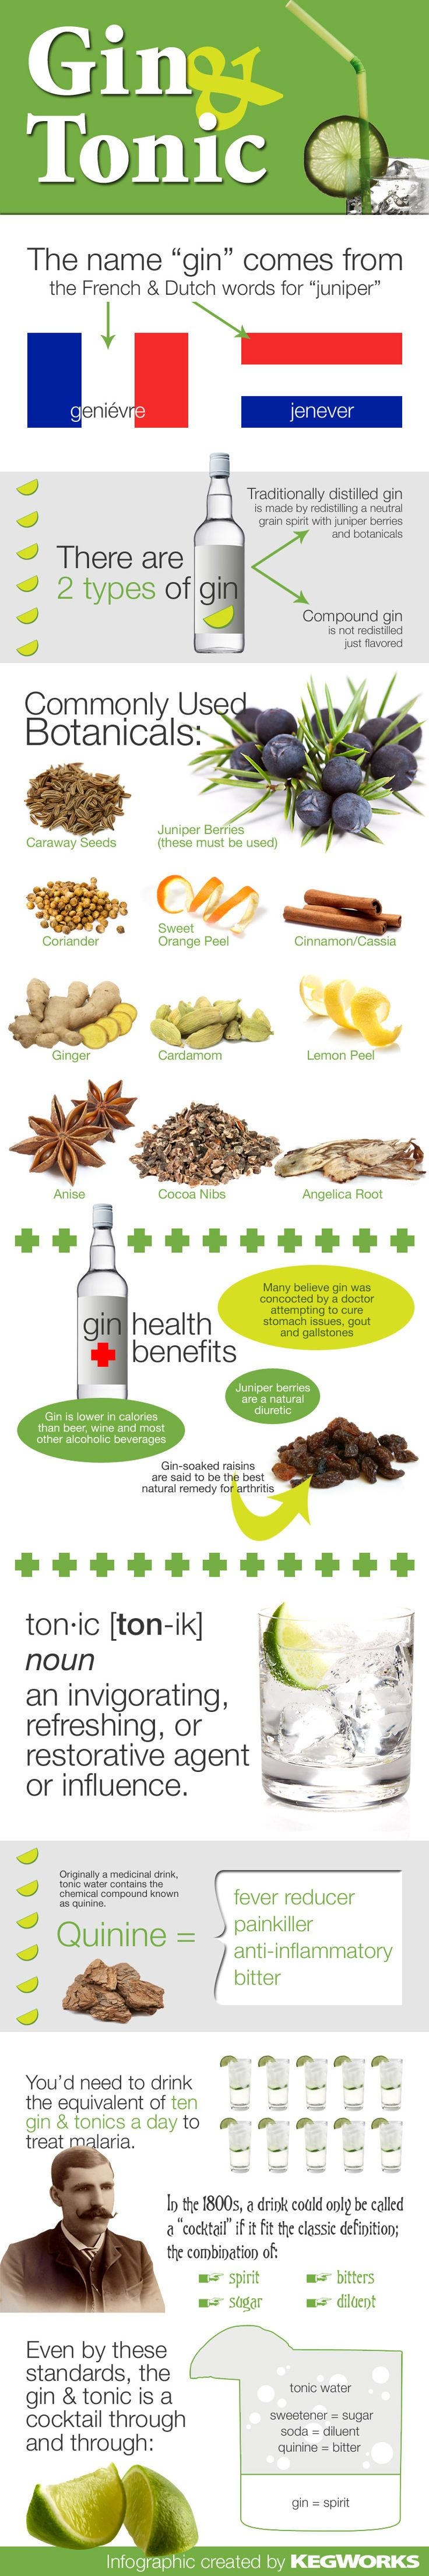 : ) I'm having one right now. For medicinal purposes only, of course... ; ) #infografía